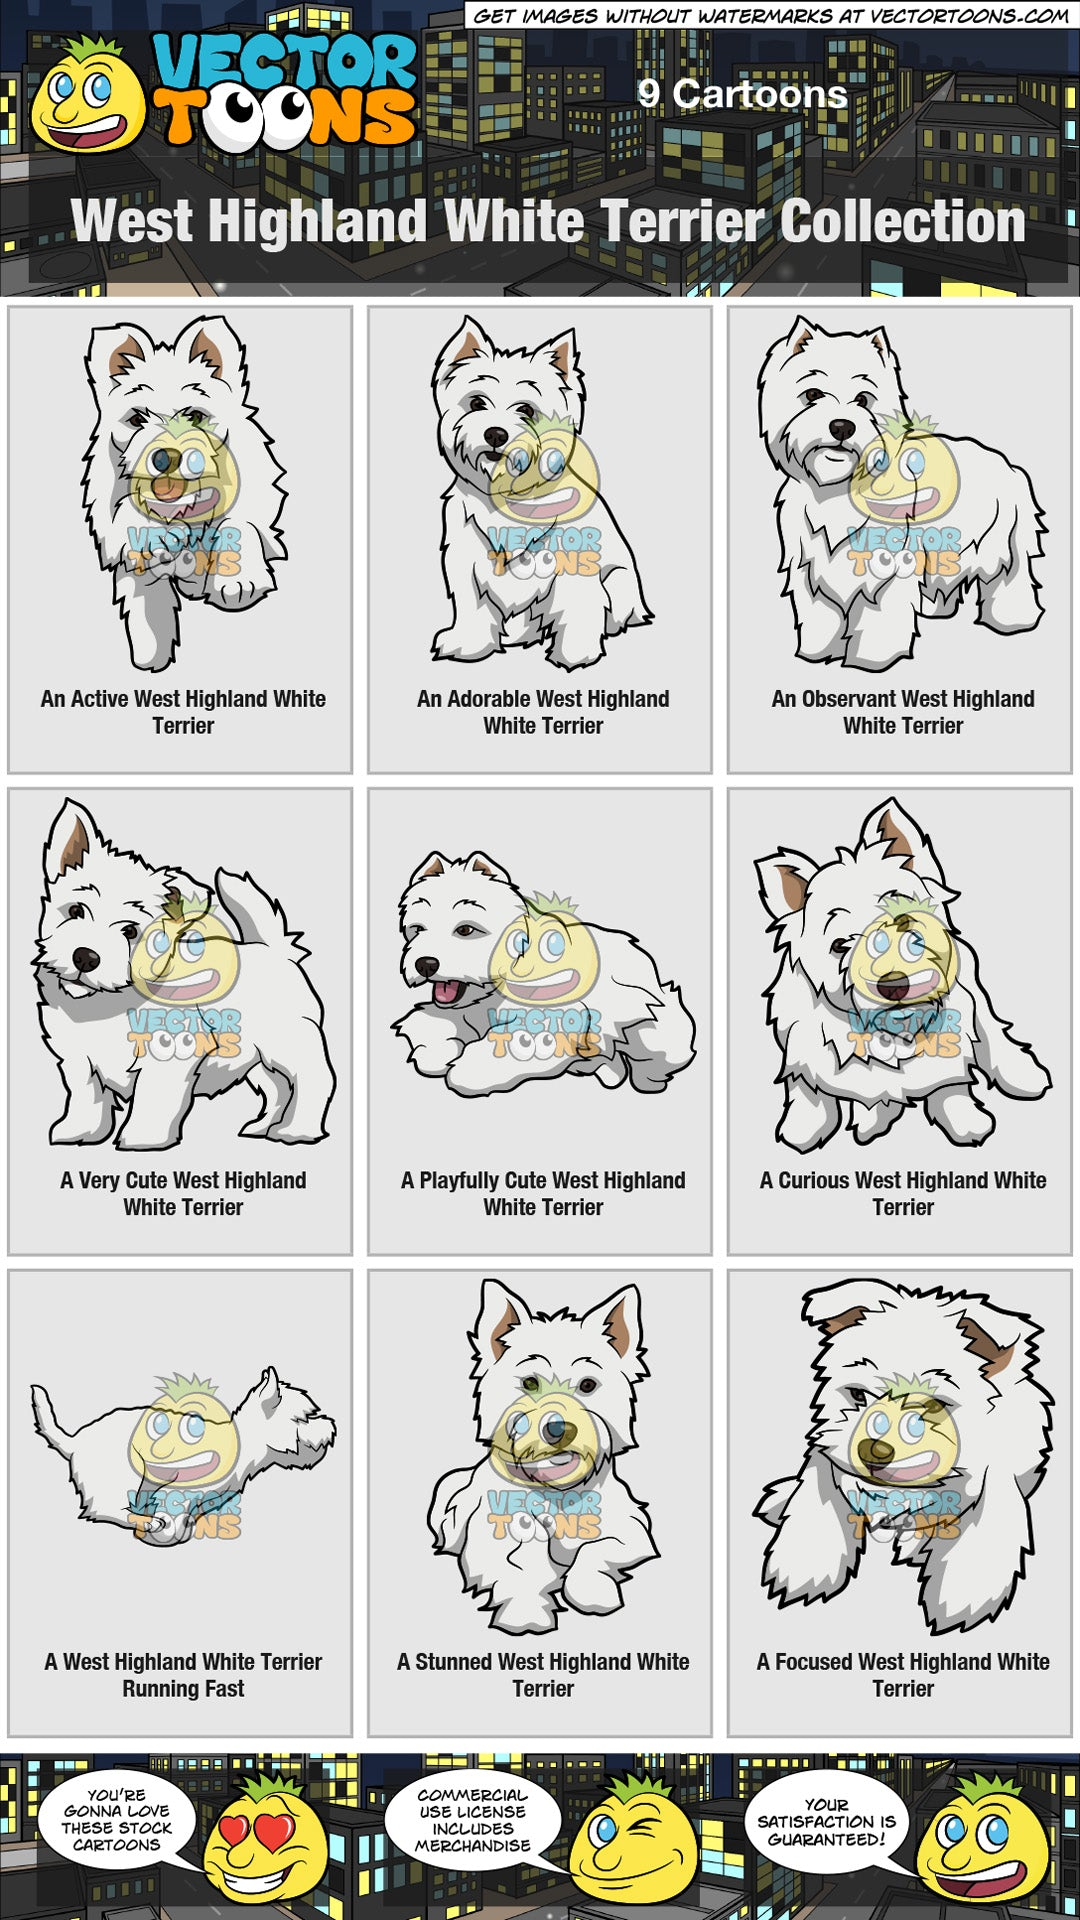 West Highland White Terrier Collection